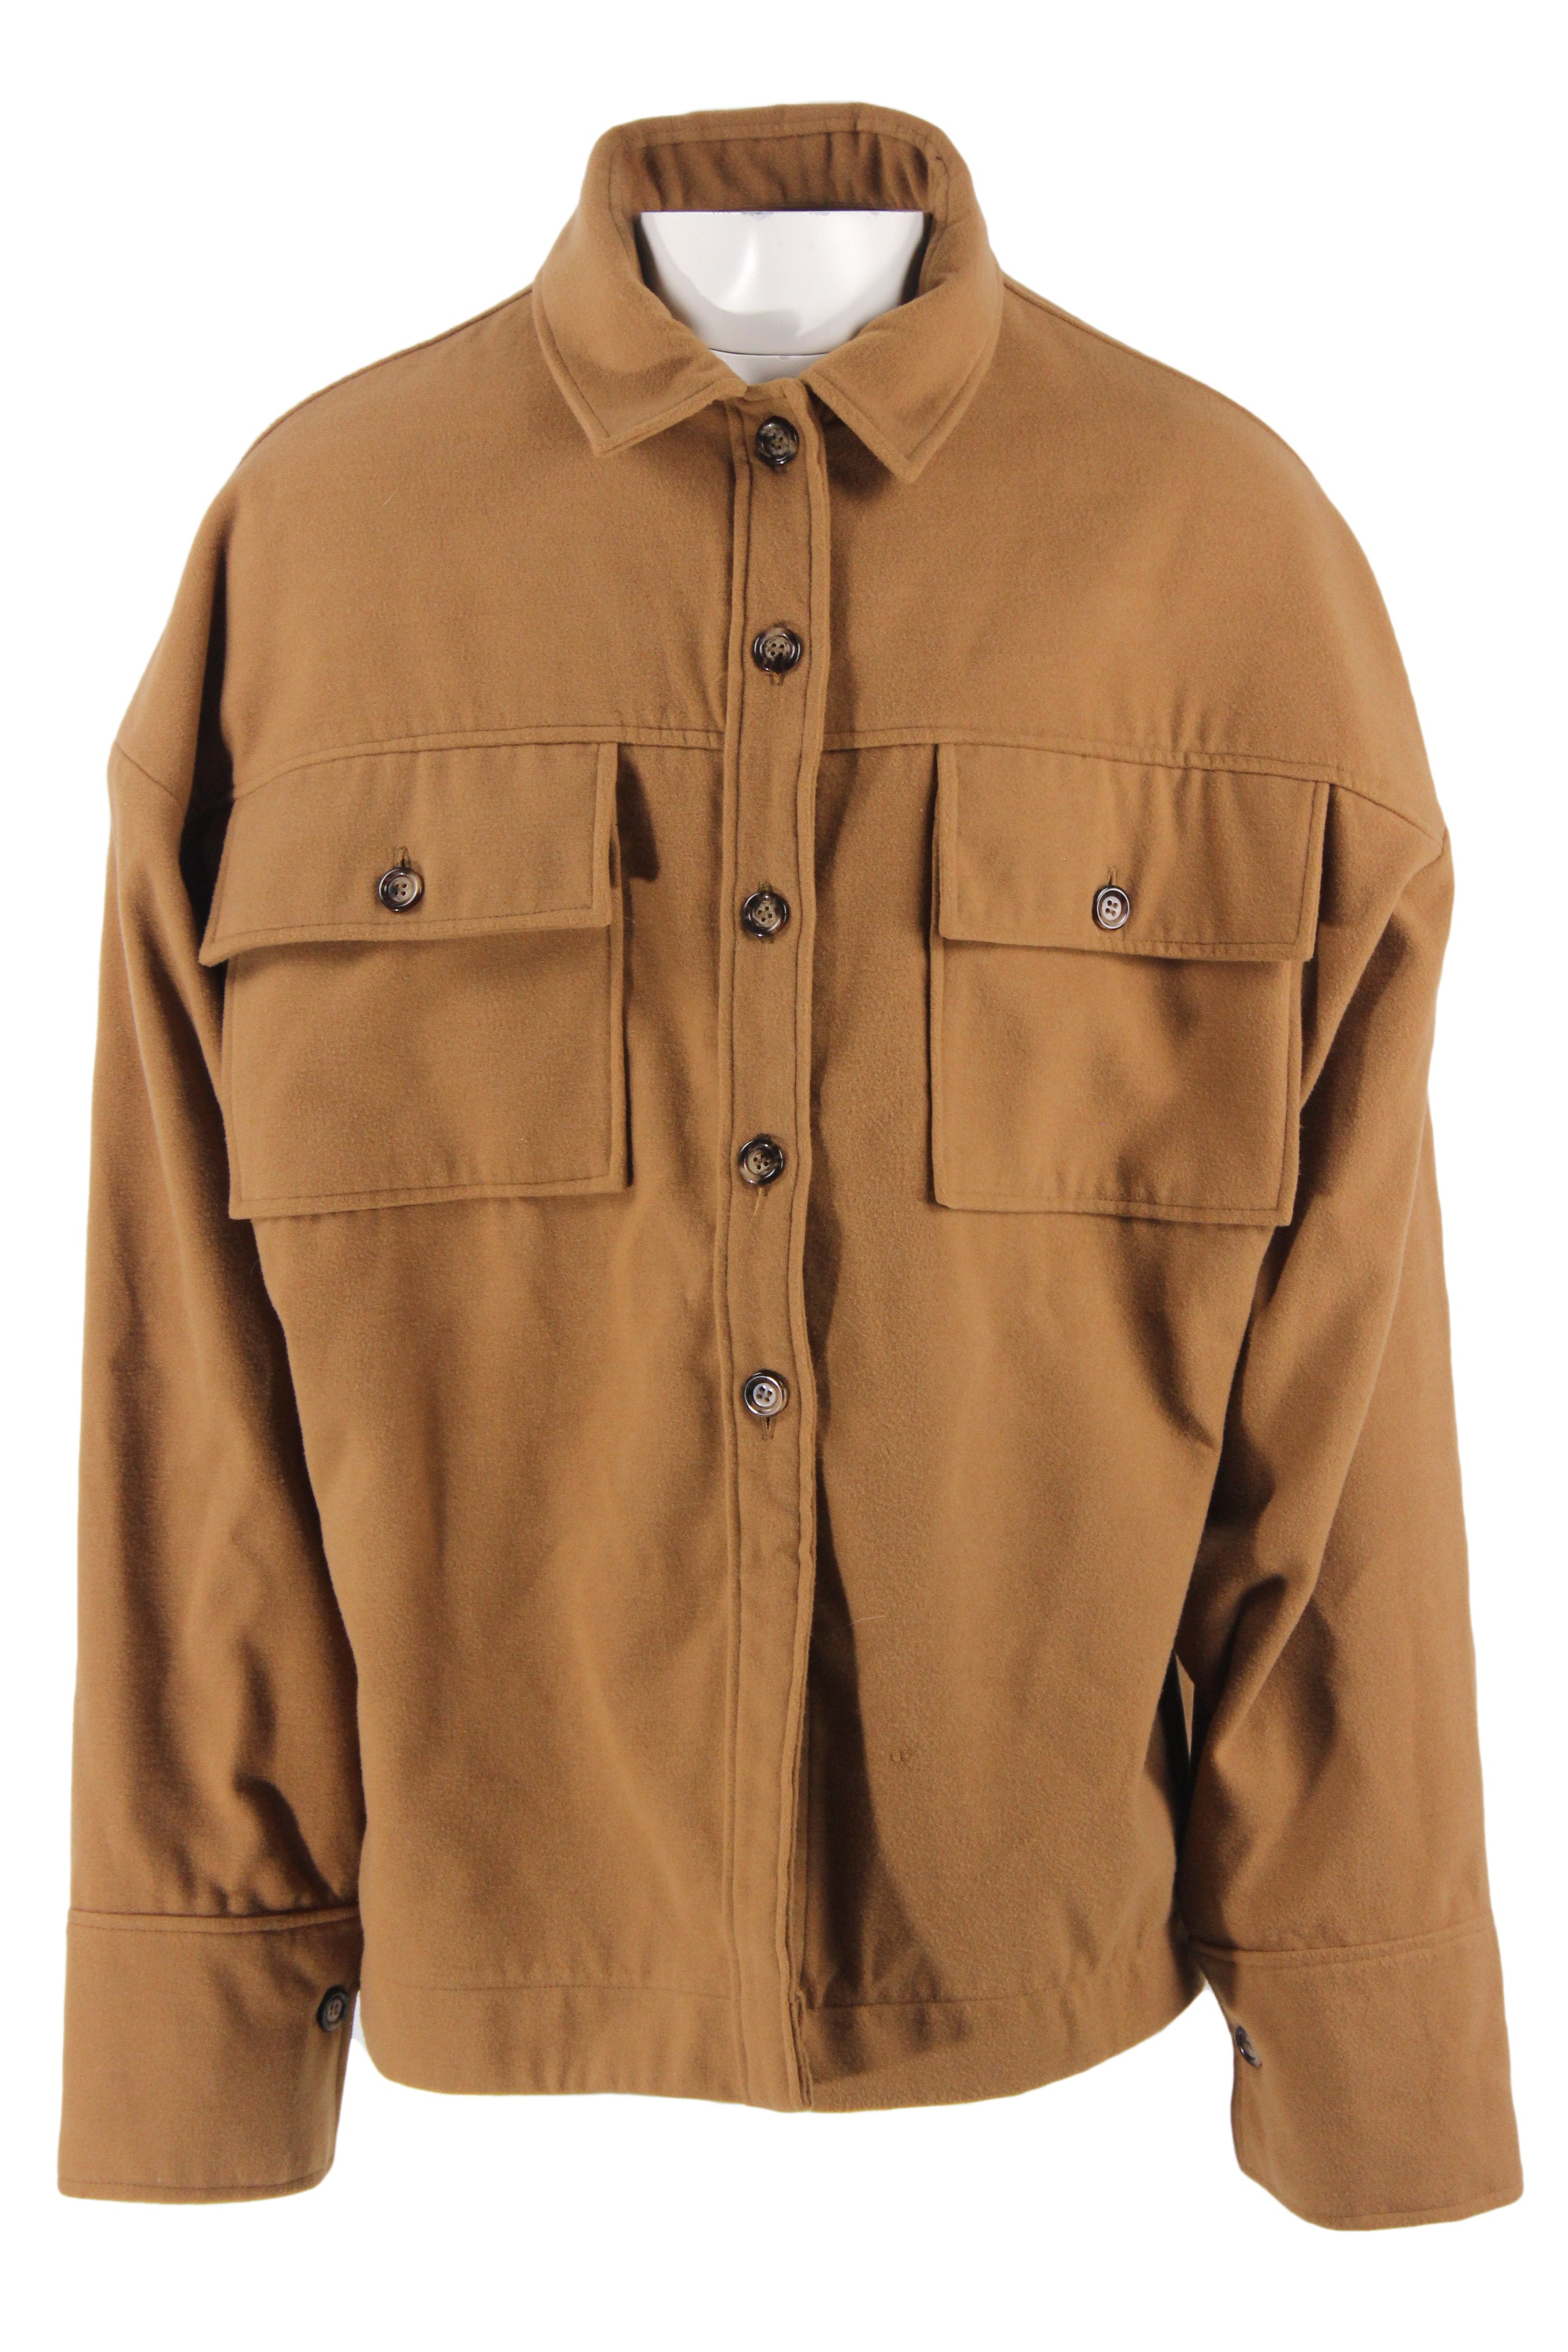 cut peanut brown collared long sleeve top. features a relaxed cut, asymmetrical oversized buttoned sleeve cuffs, a button down closure, & two flap button chest pockets.